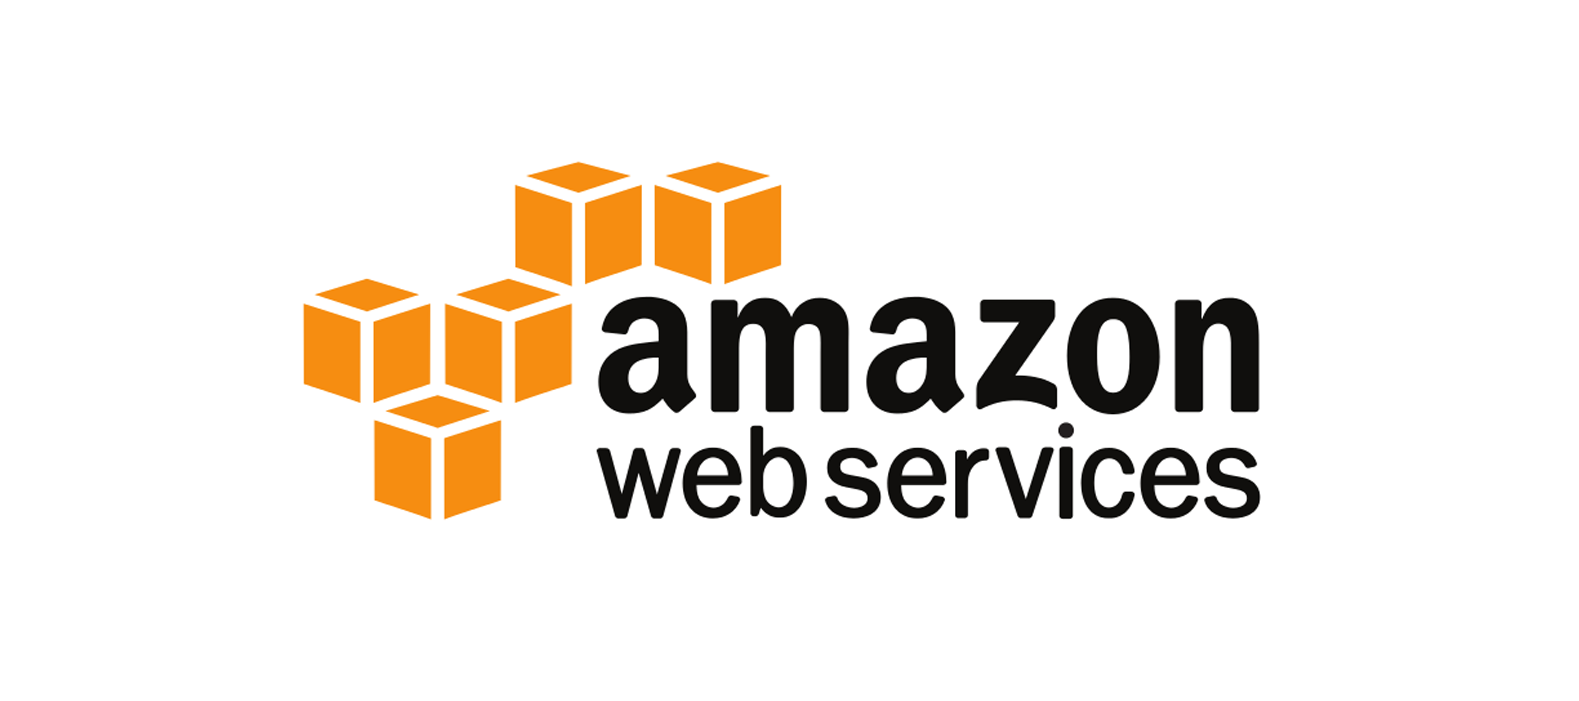 What is Amazon Web Services (AWS)?